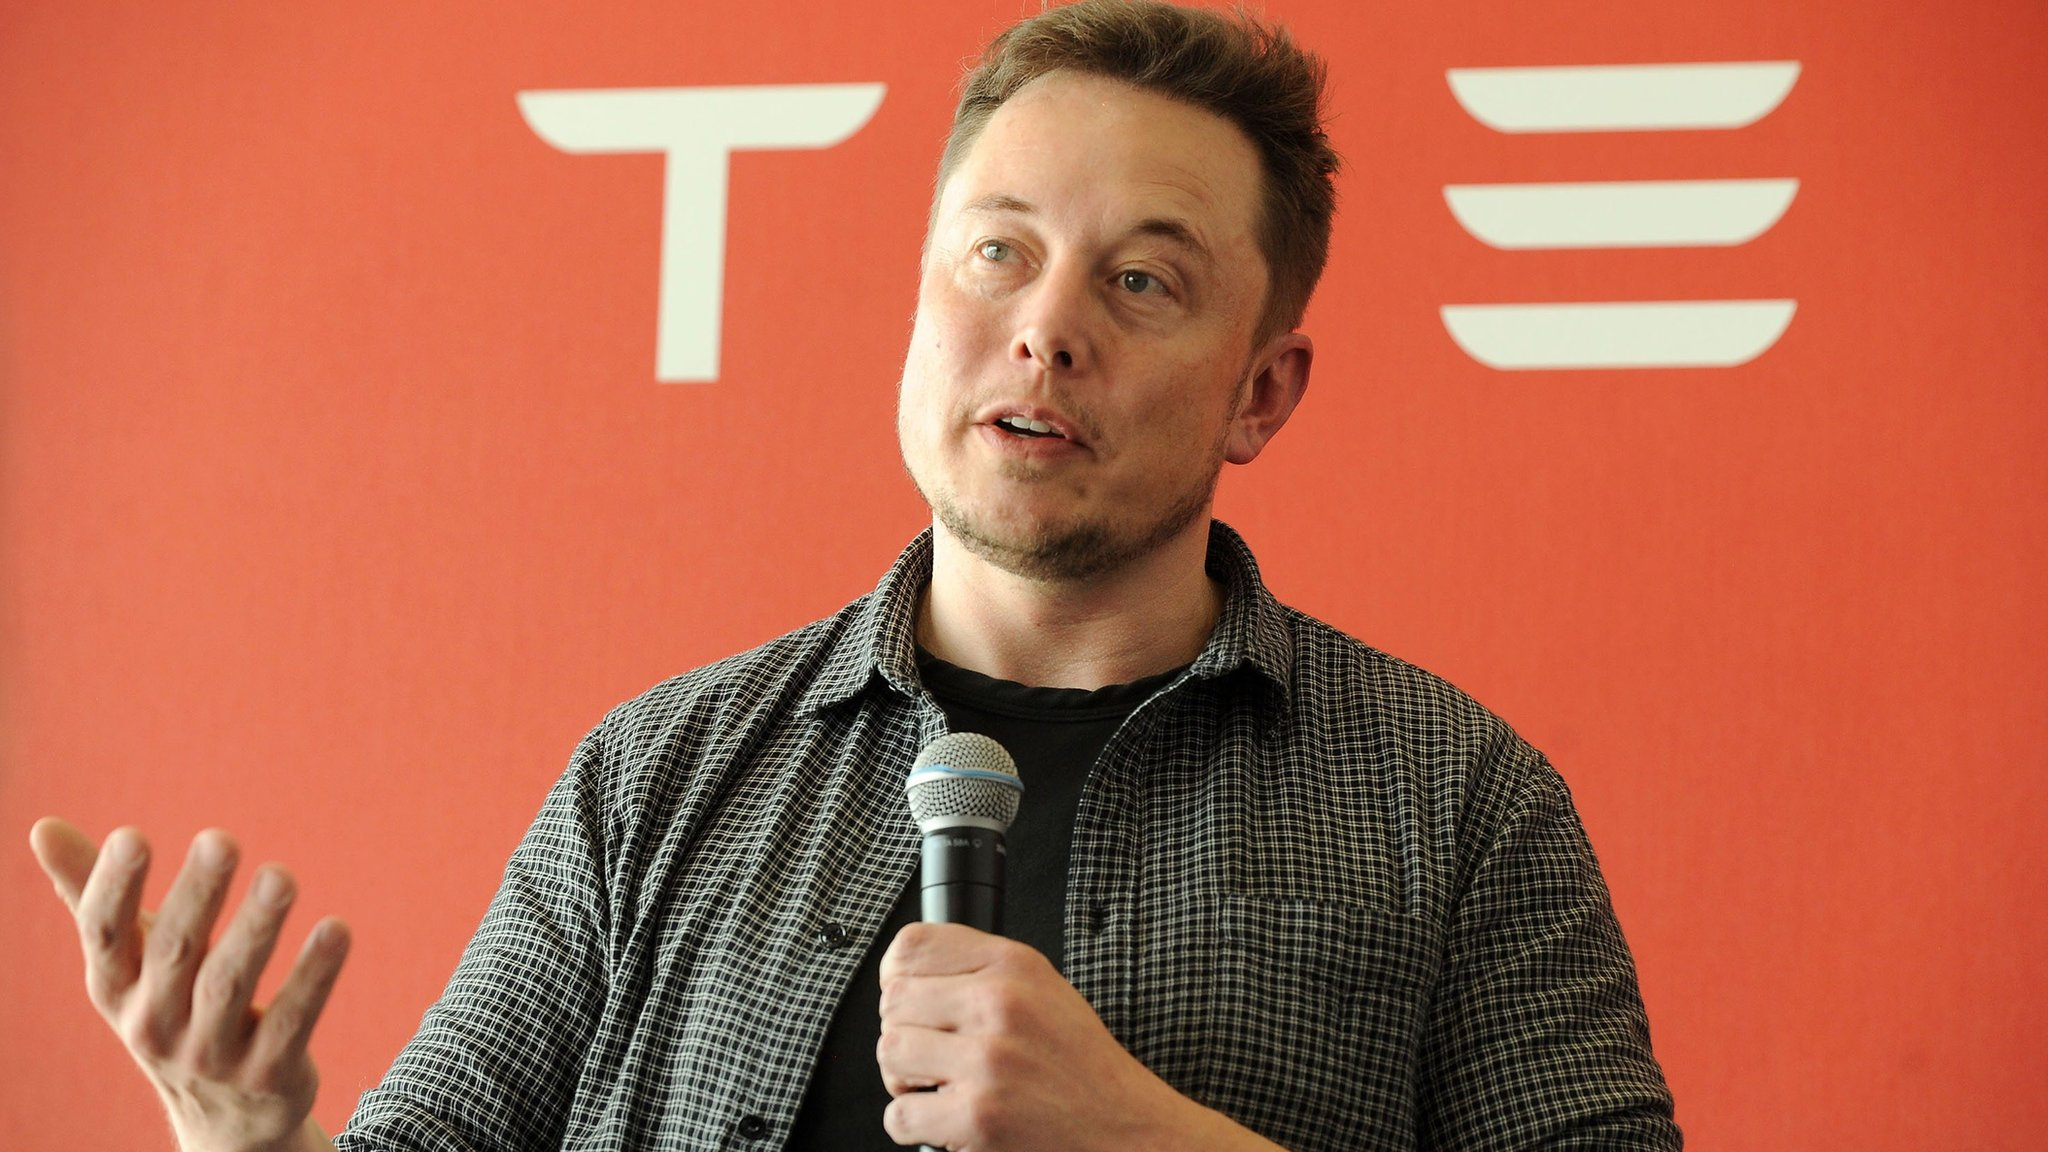 Tesla investors spooked by revelations in emotional interview